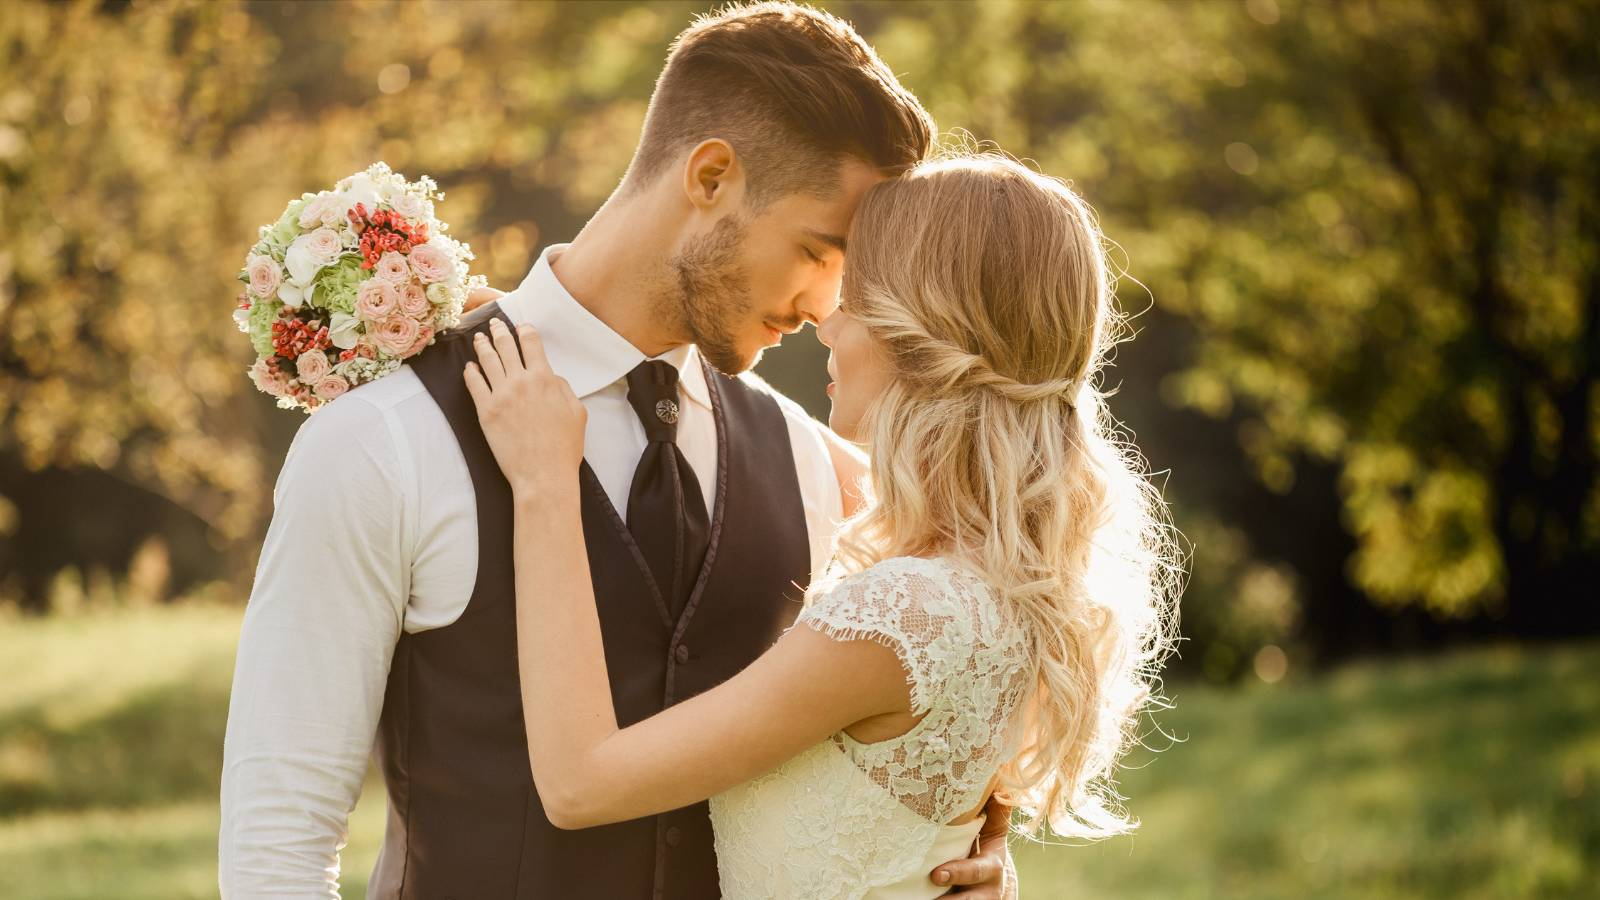 4 Must-Know Tips for a COVID-Friendly Wedding